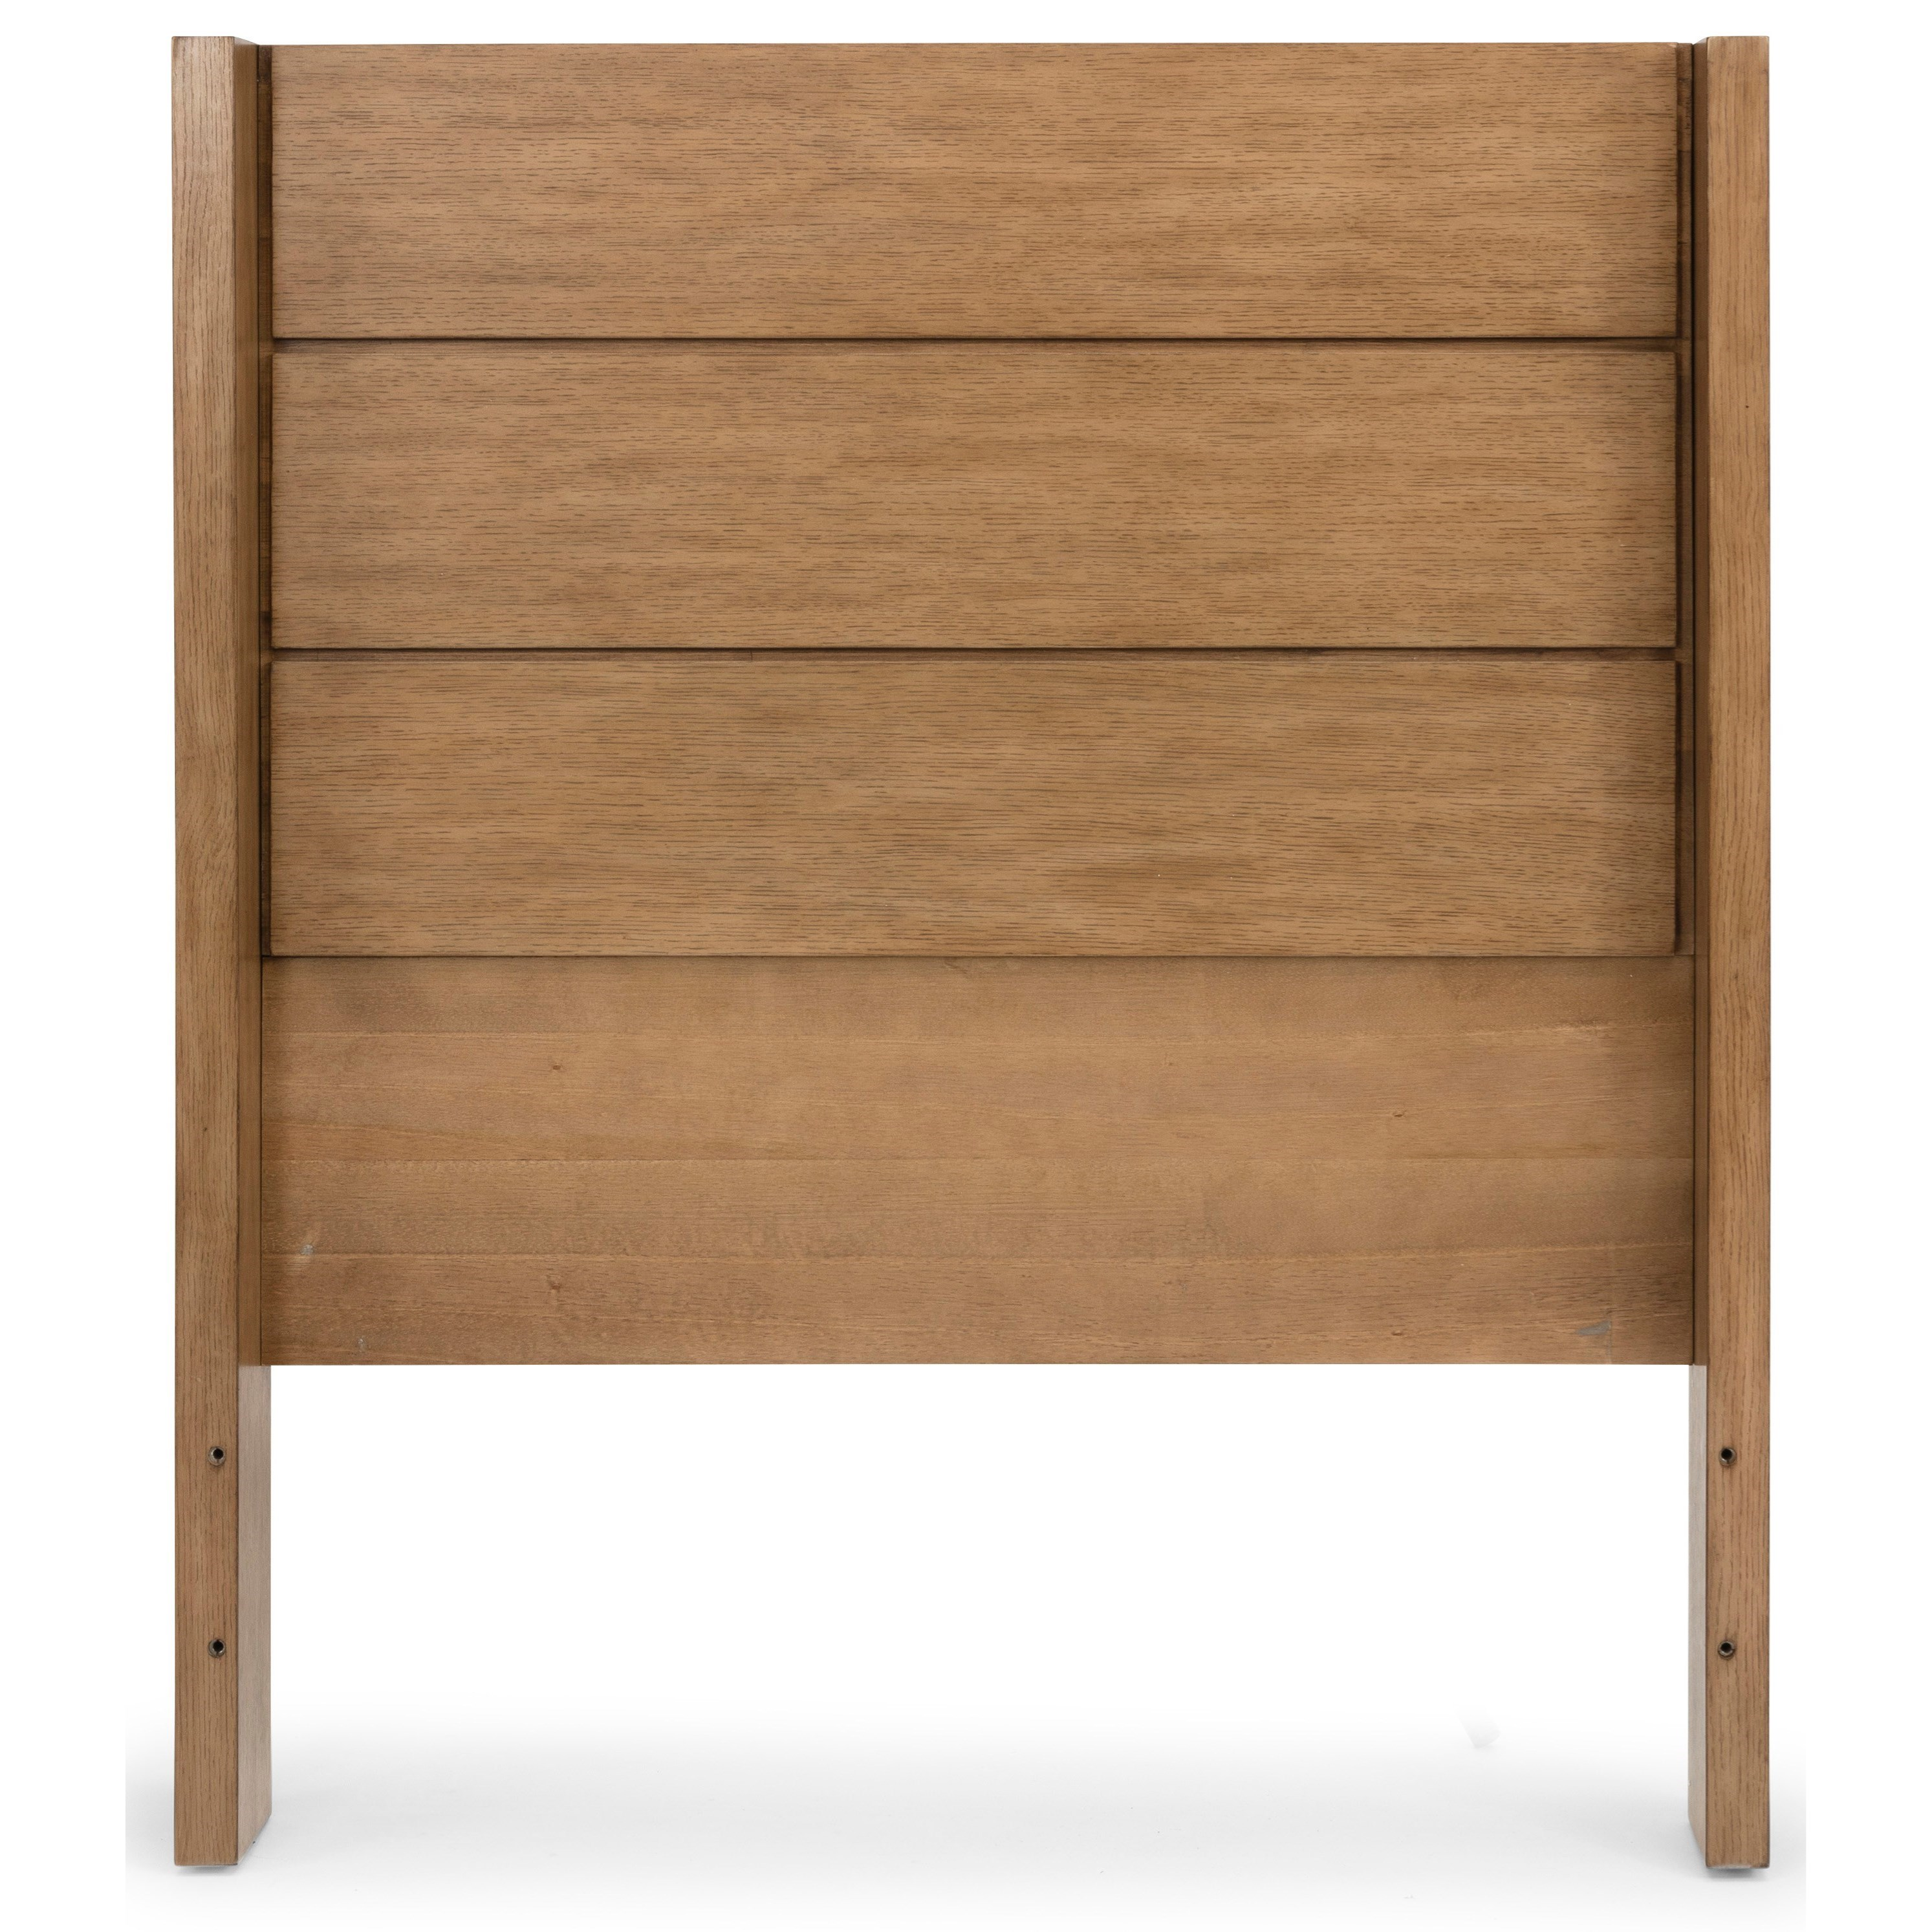 Big Sur Twin Headboard by Homestyles at Corner Furniture